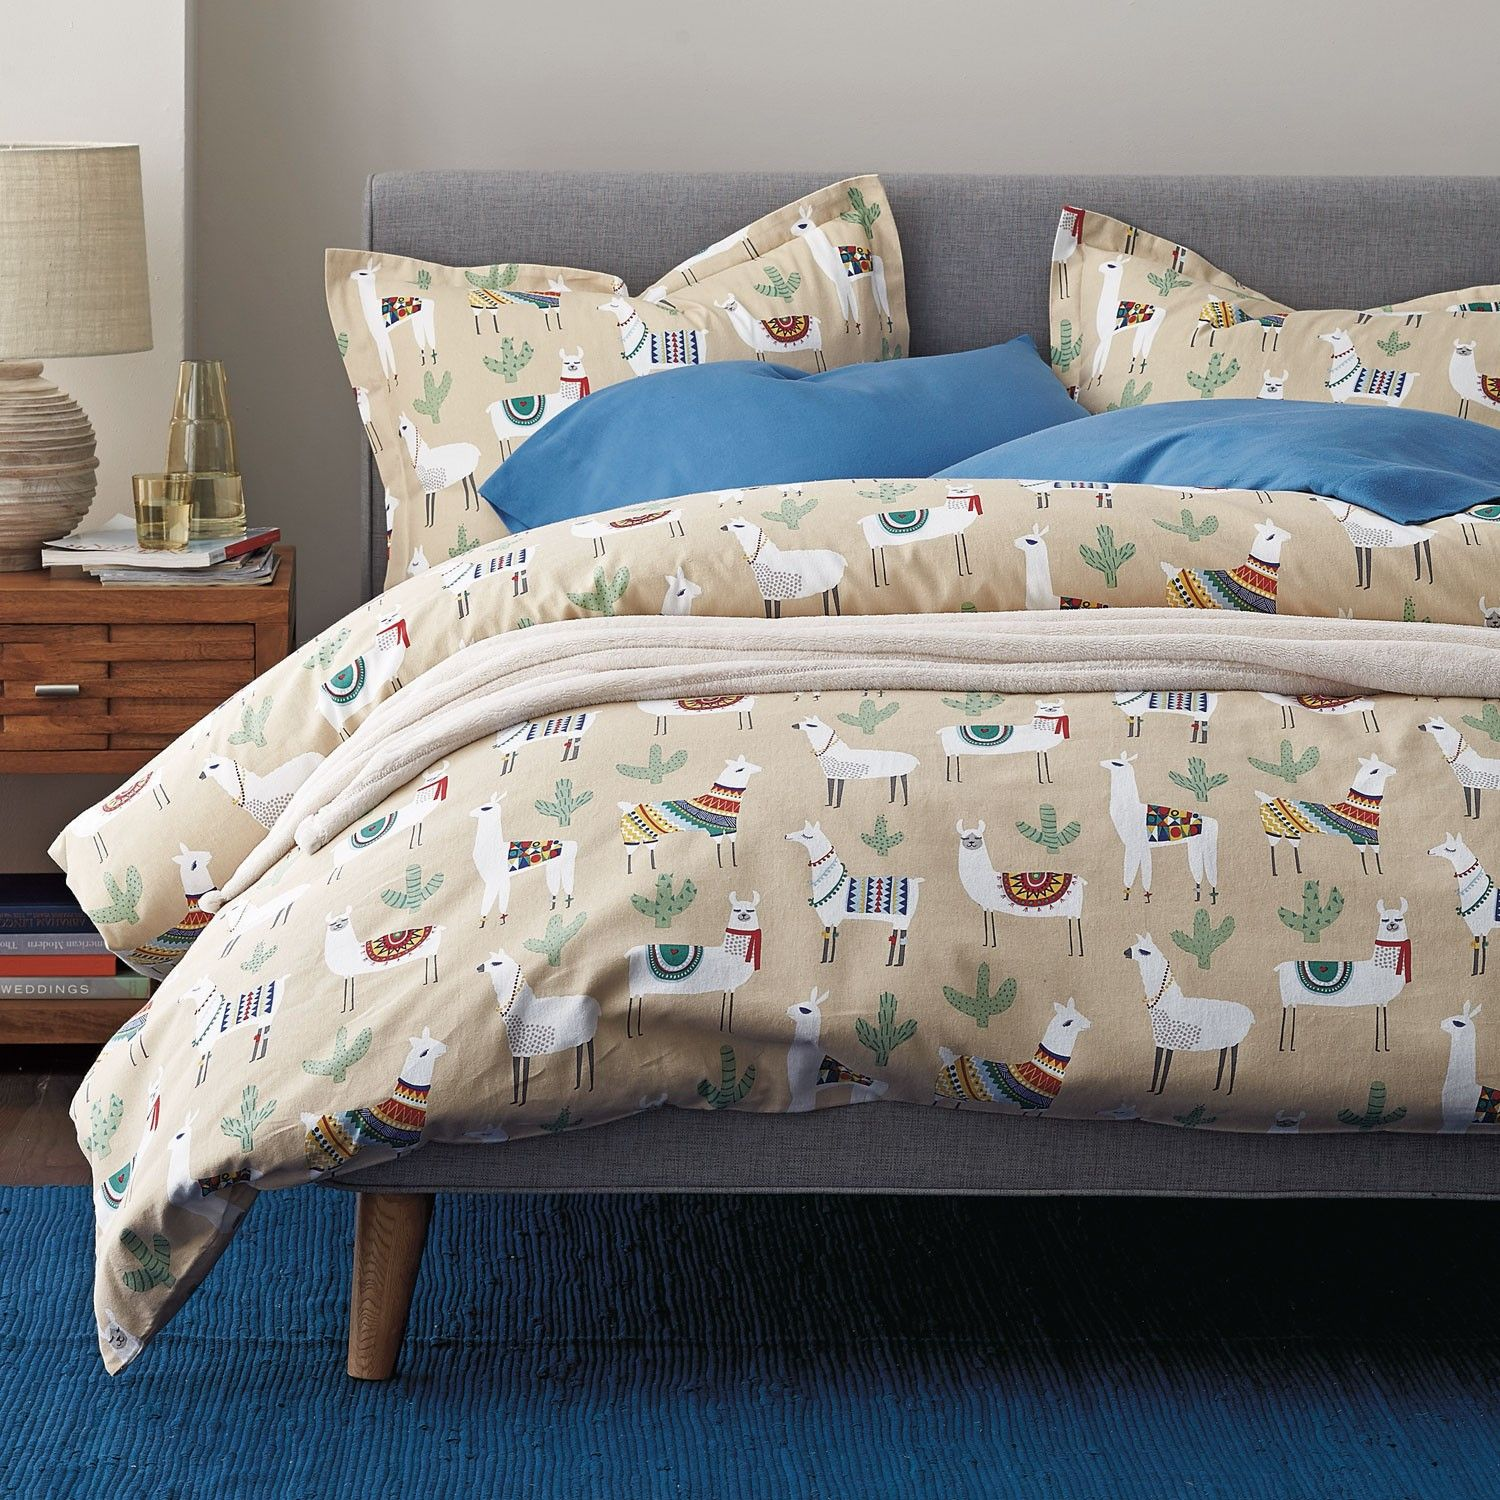 Flannel Sheets Bedding Set The Company